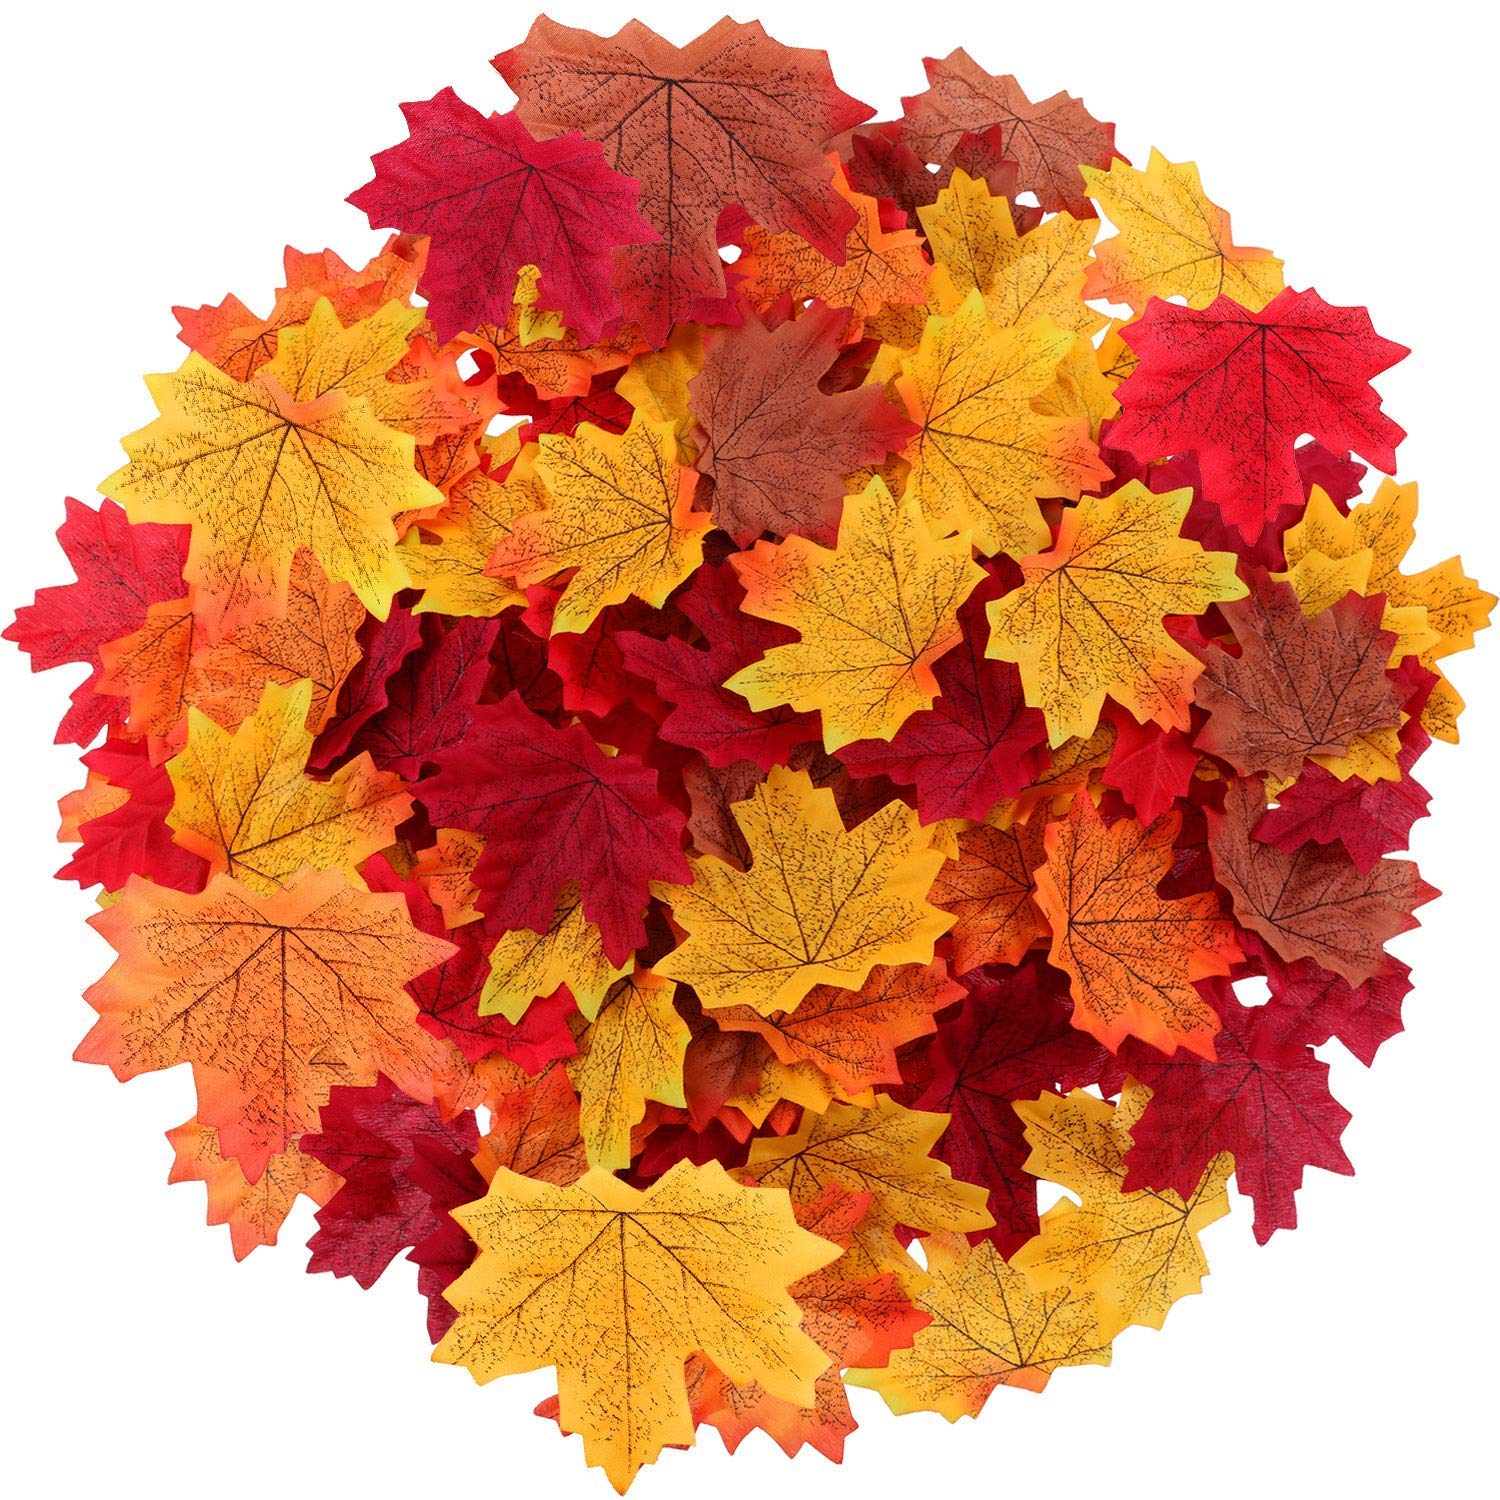 Colorful faux maple leaves in vibrant colors for crafts and DIY decor - Come on over to enjoy 5 Autumn Recipes With Apples + Simple Fall Decorating Tips on Hello Lovely!